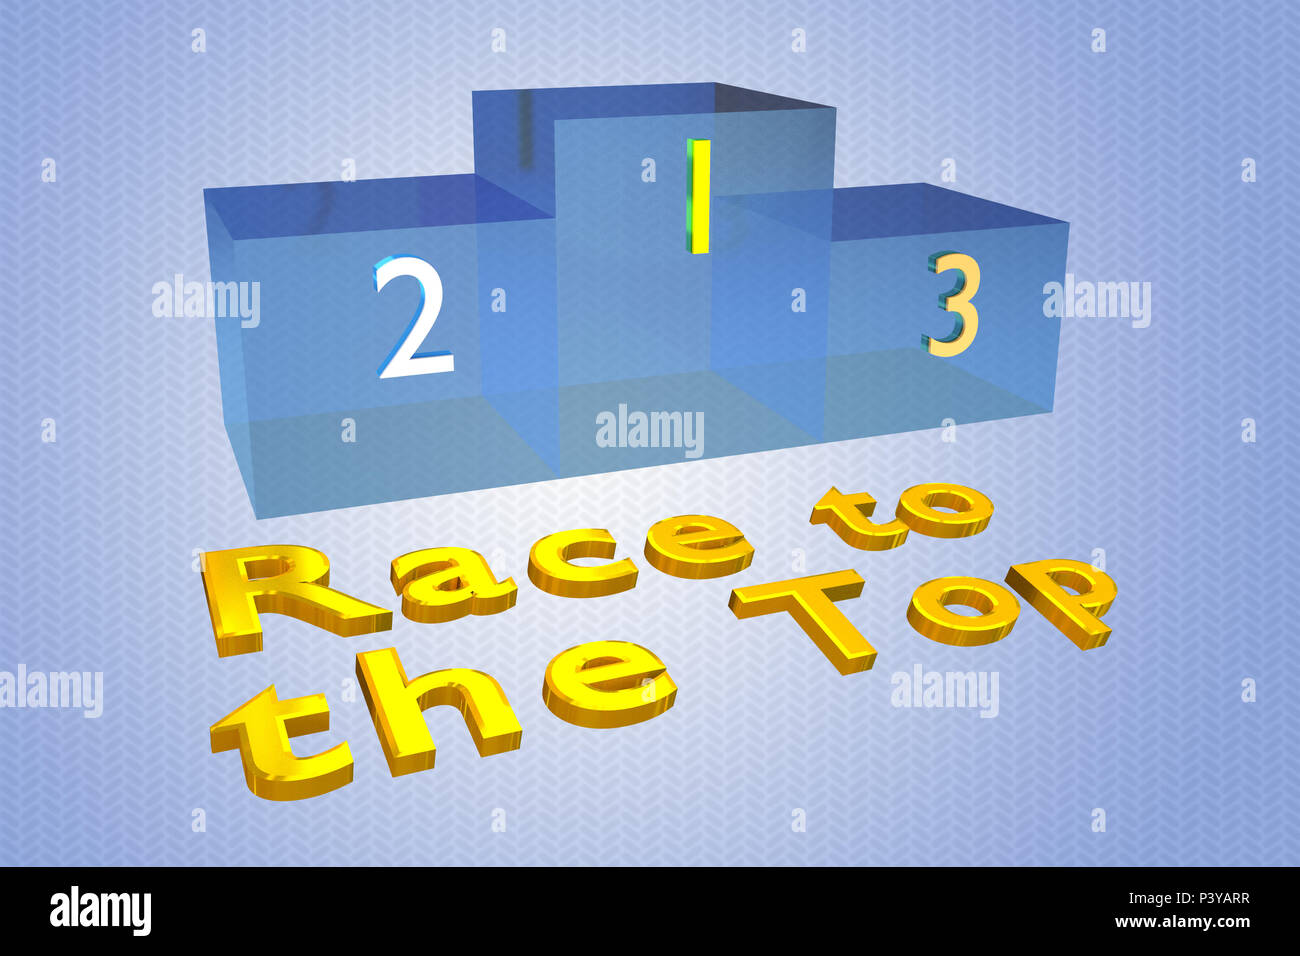 3D illustration of Race to the Top title with a podium as a background - Stock Image